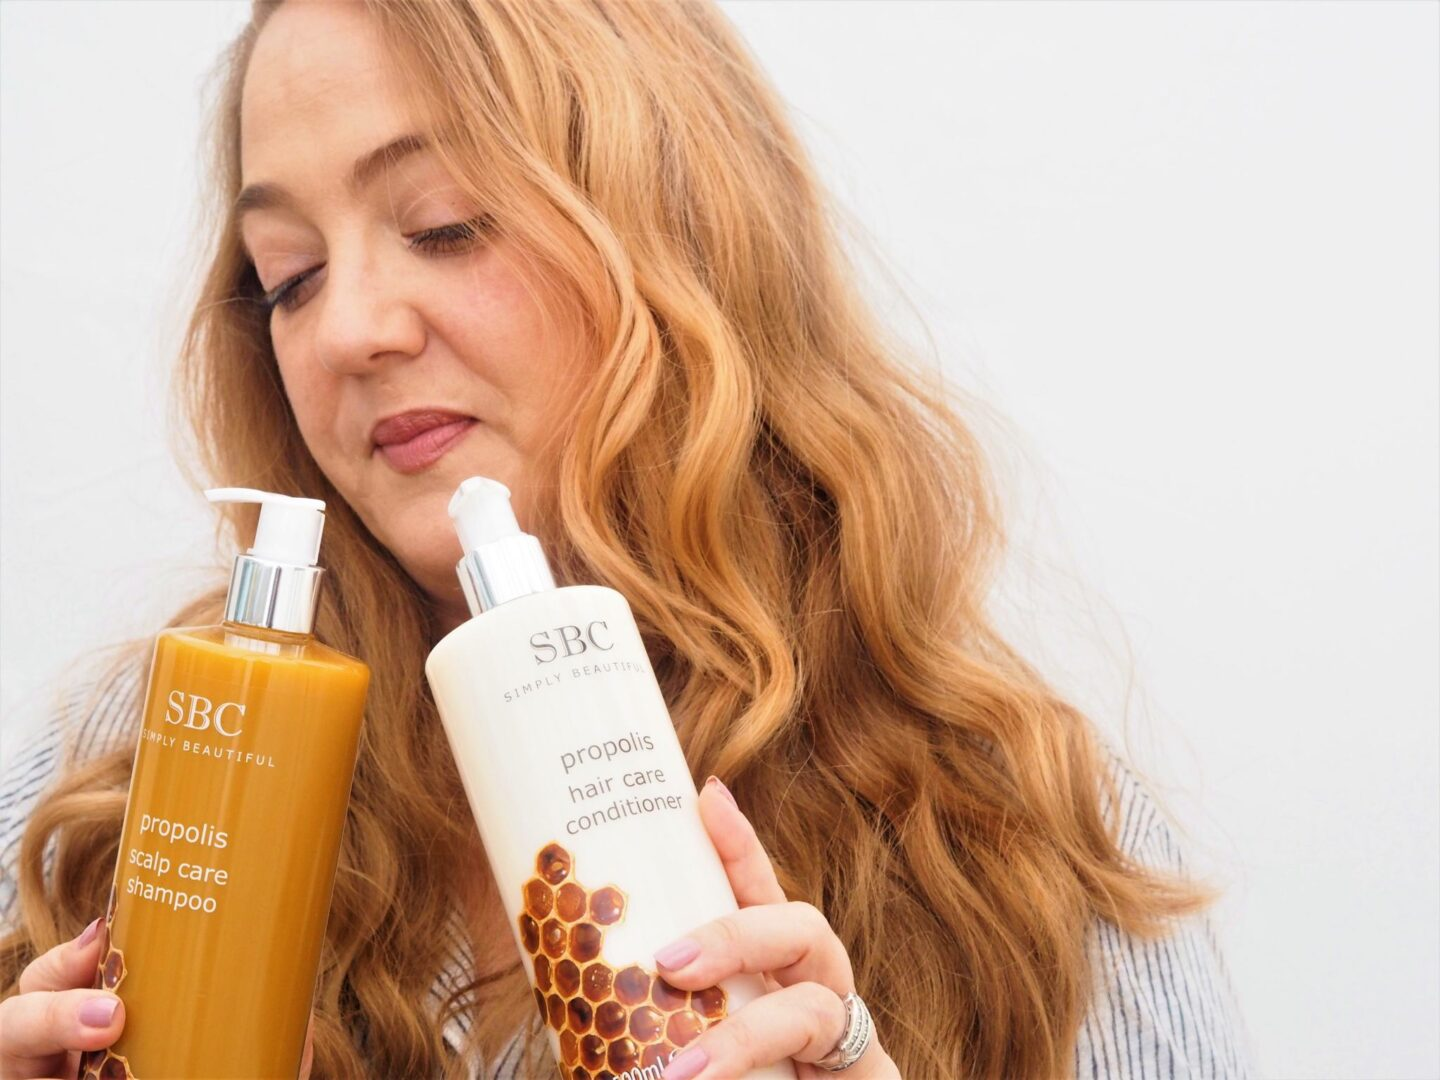 Propolis haircare from sbc